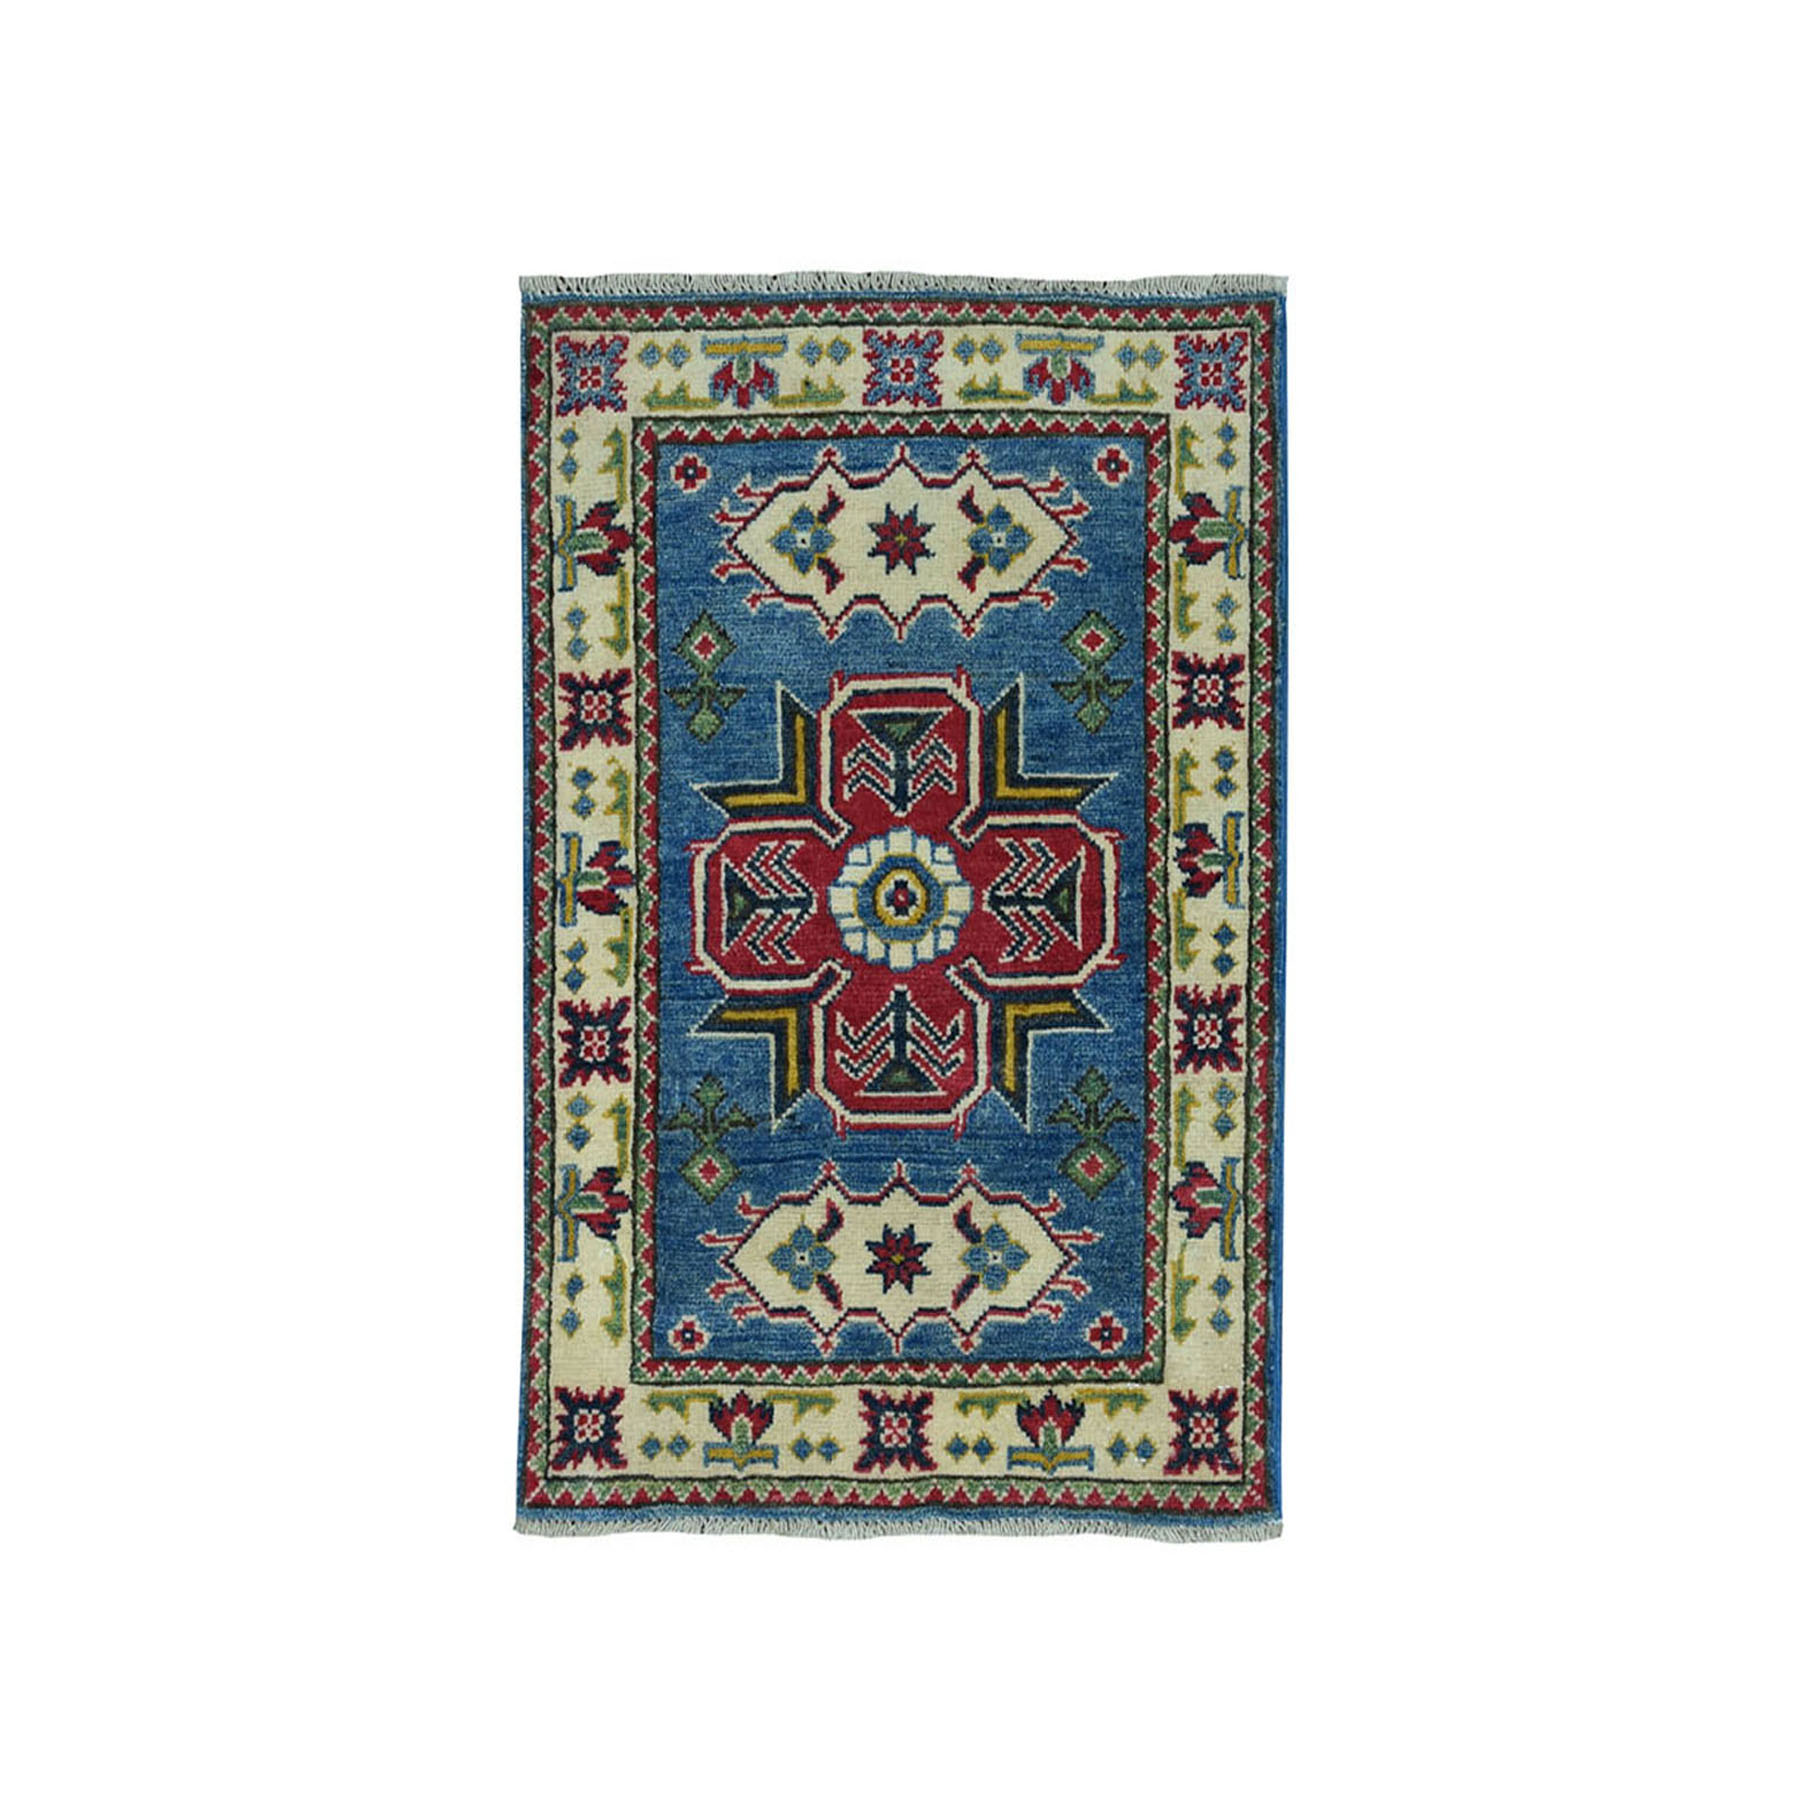 "2'1""x3' Blue Geometric Design Kazak Pure Wool Hand-Knotted Oriental Rug"